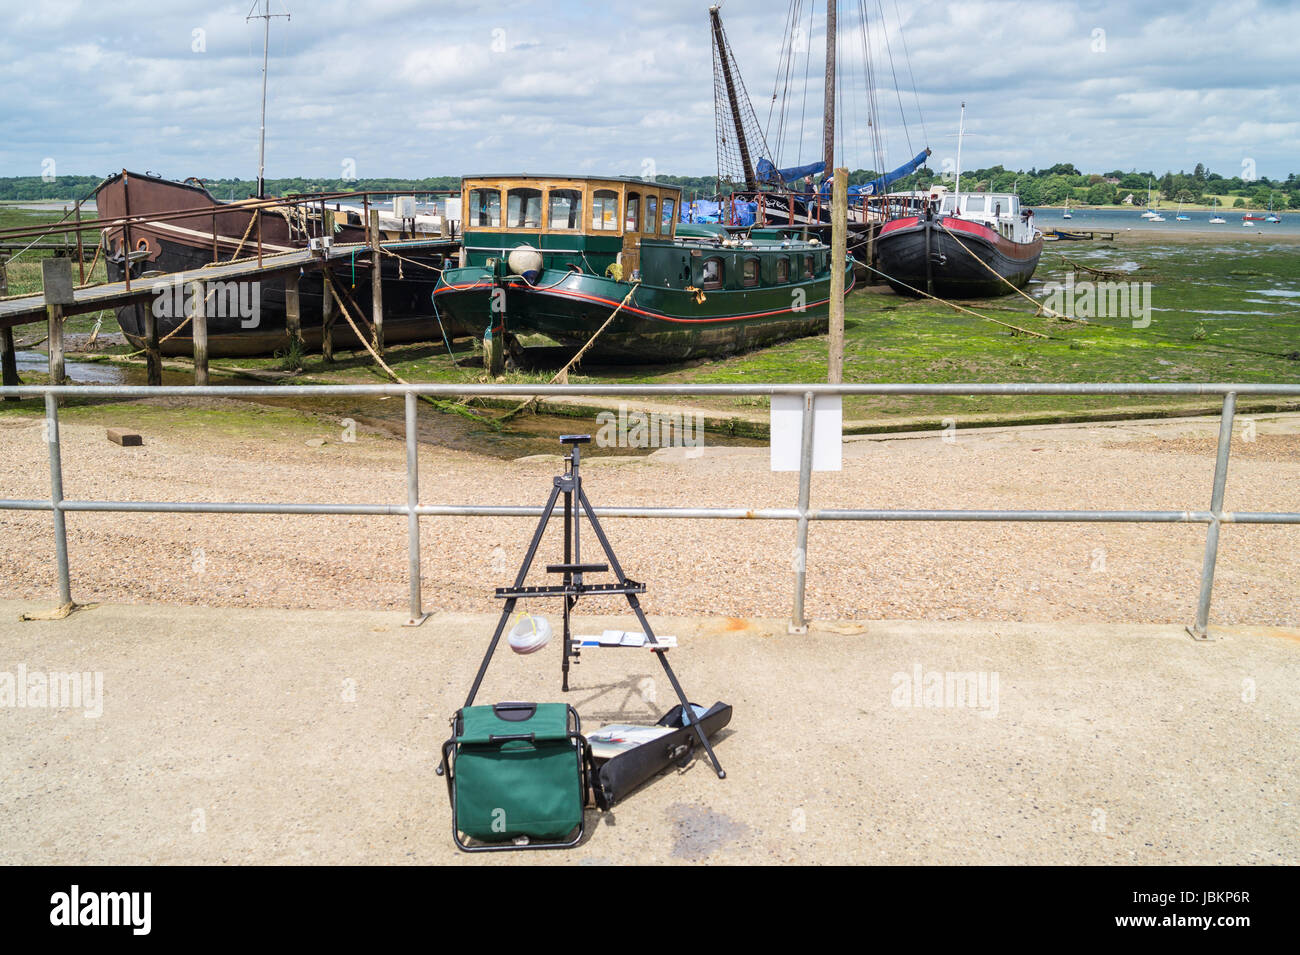 A painter's easel on the water's edge at Pin Mill, Suffolk, England - Stock Image